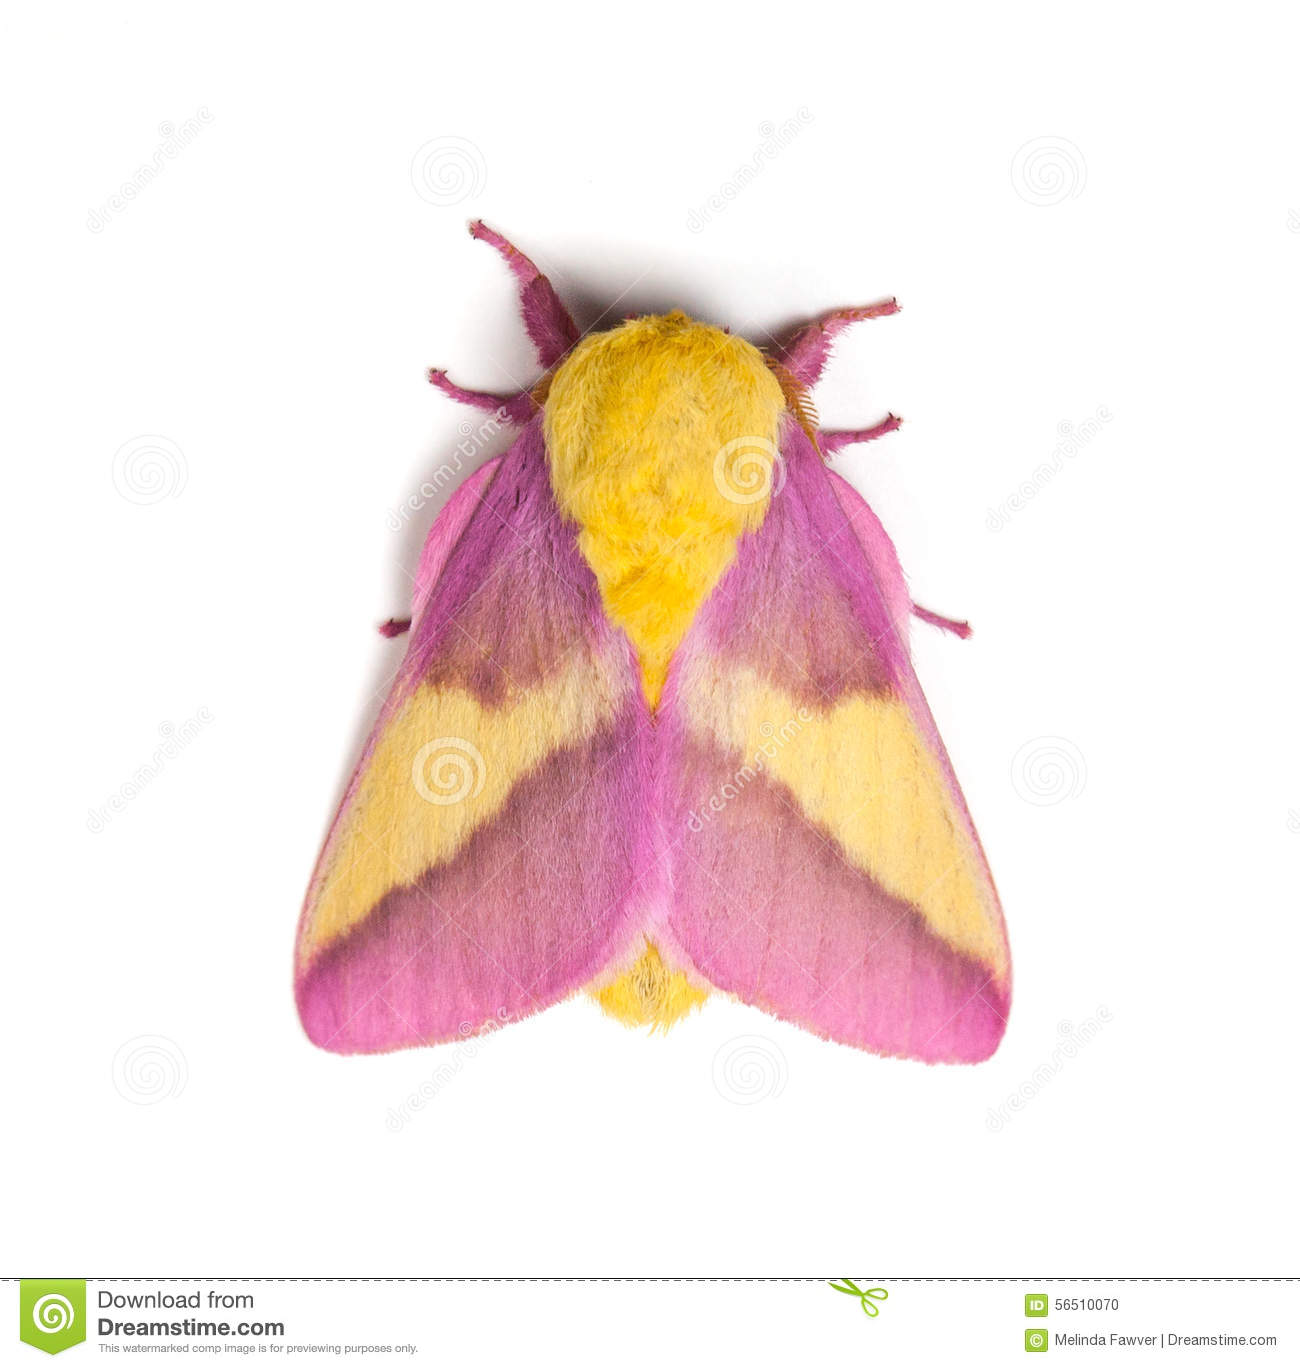 Rosy Maple Moth clipart #15, Download drawings